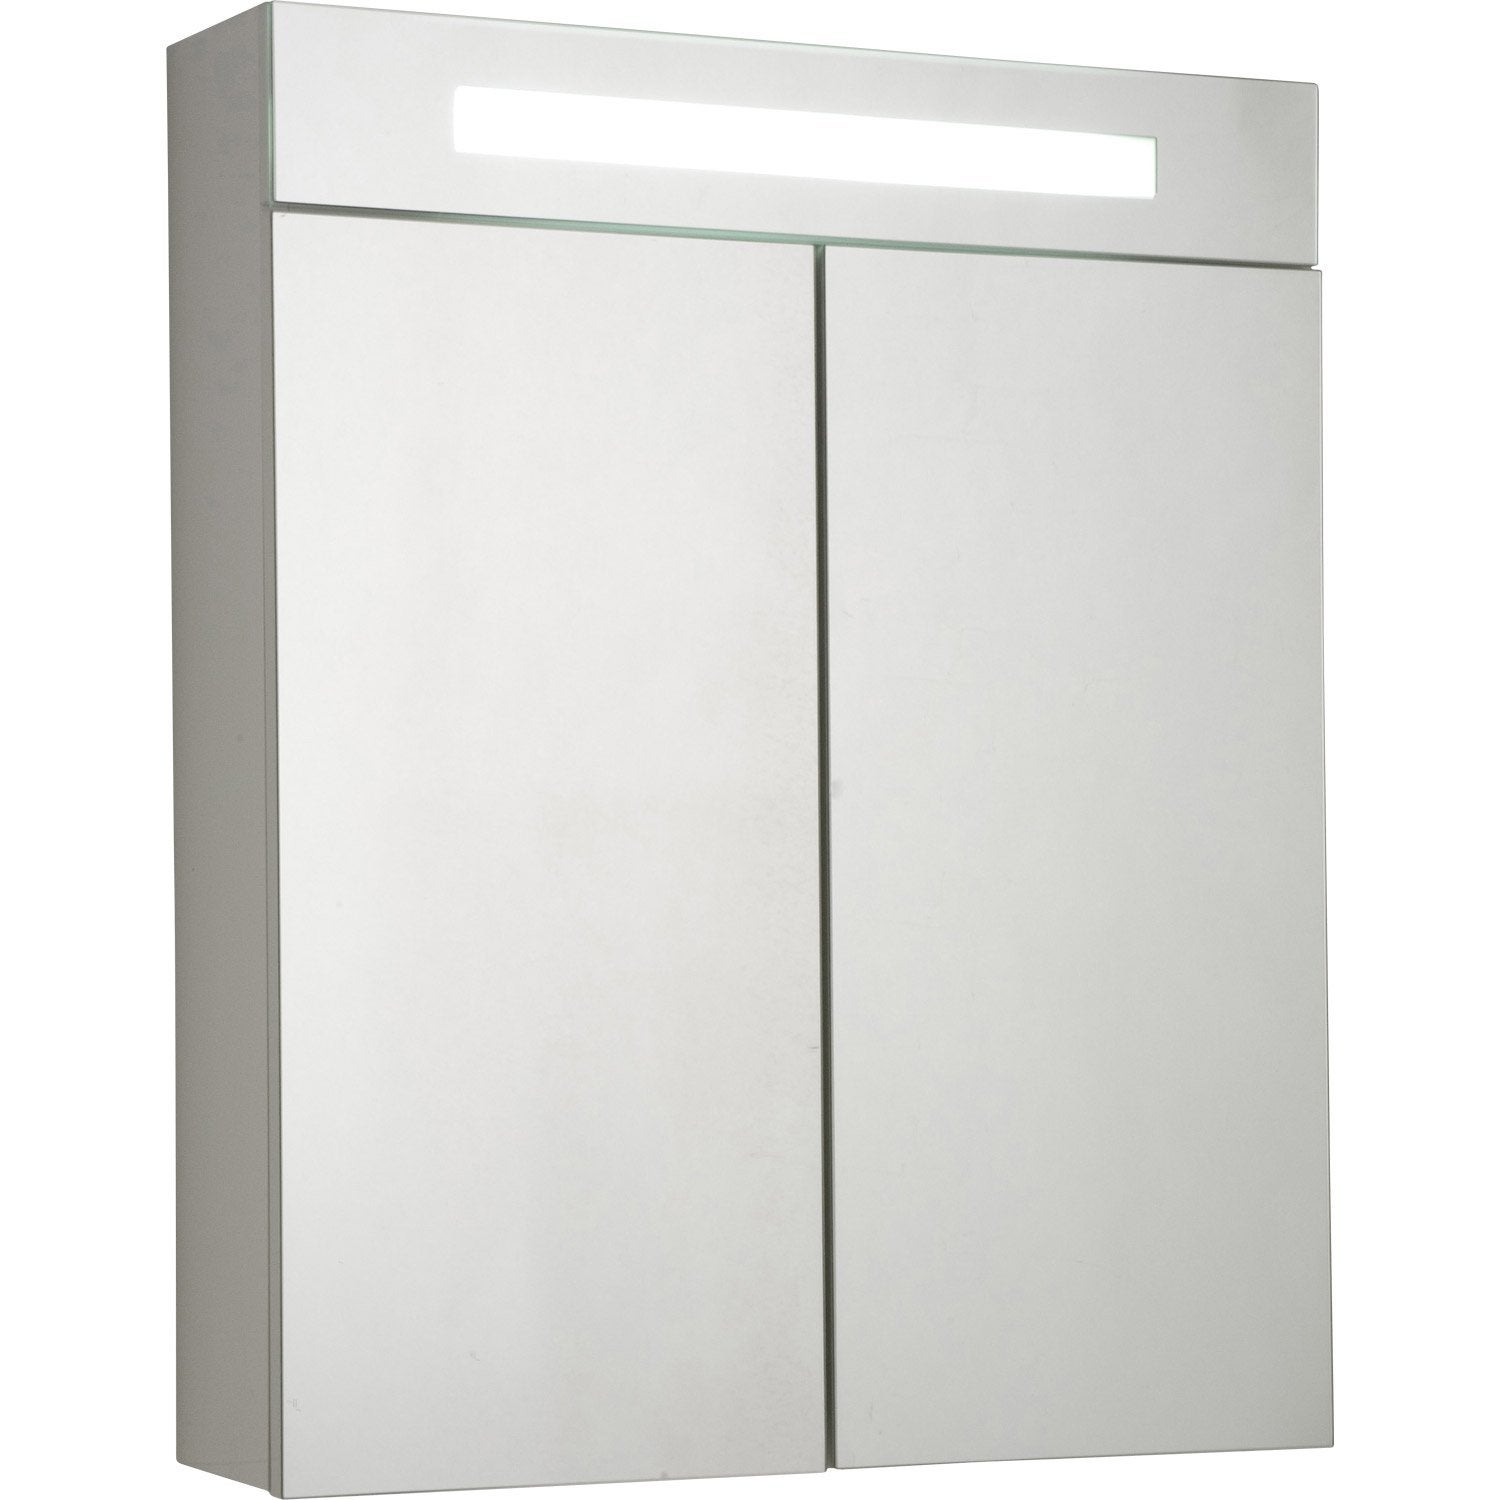 armoire de toilette lumineuse blanc cm sensea telio. Black Bedroom Furniture Sets. Home Design Ideas